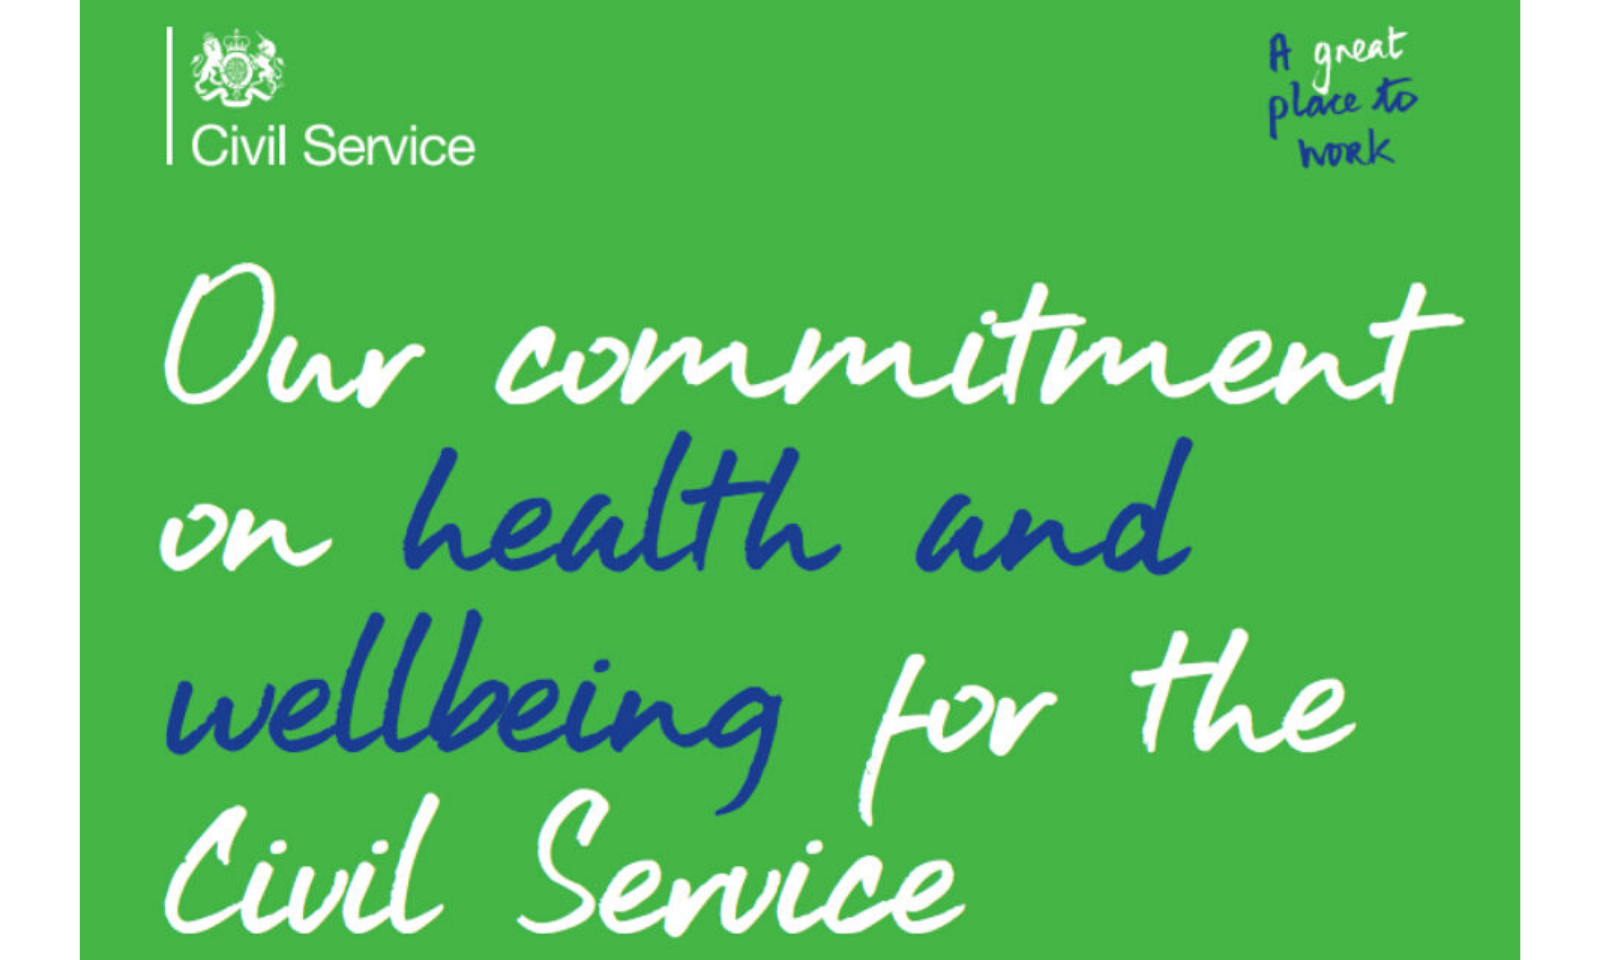 Civil Service wellbeing promise.